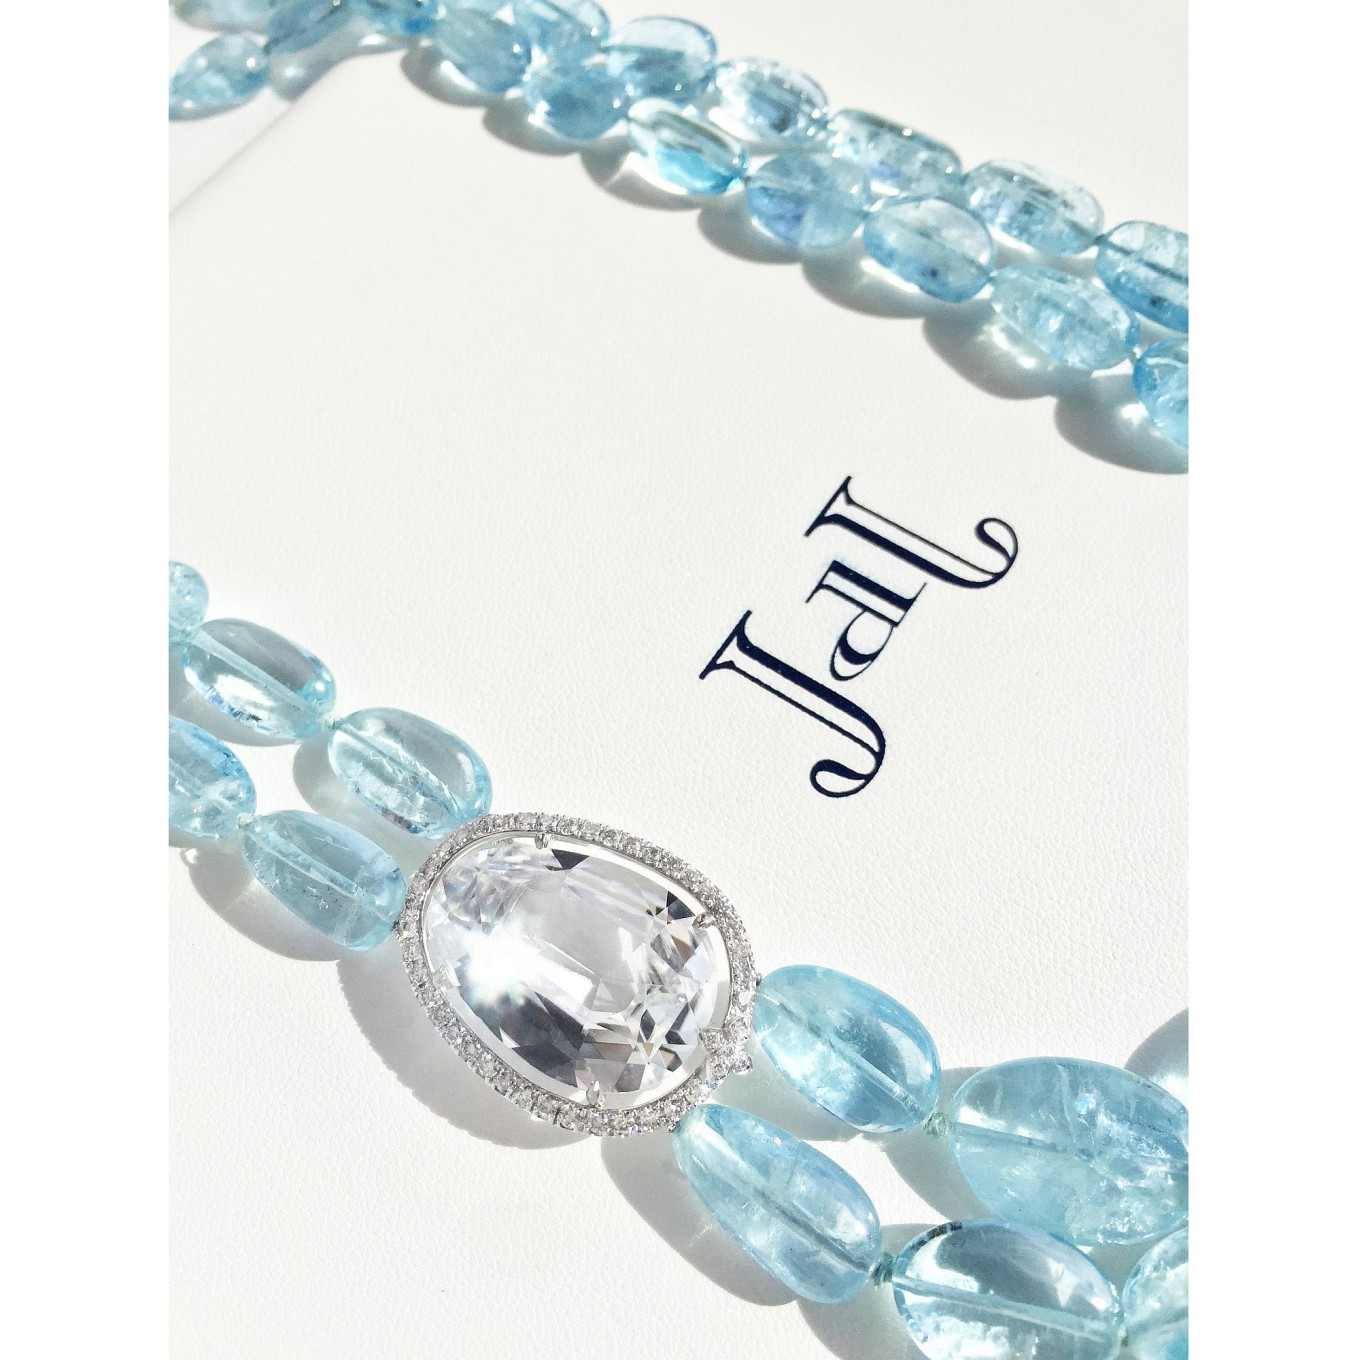 Tumbled Aquamarine. White Tourmaline & Diamonds